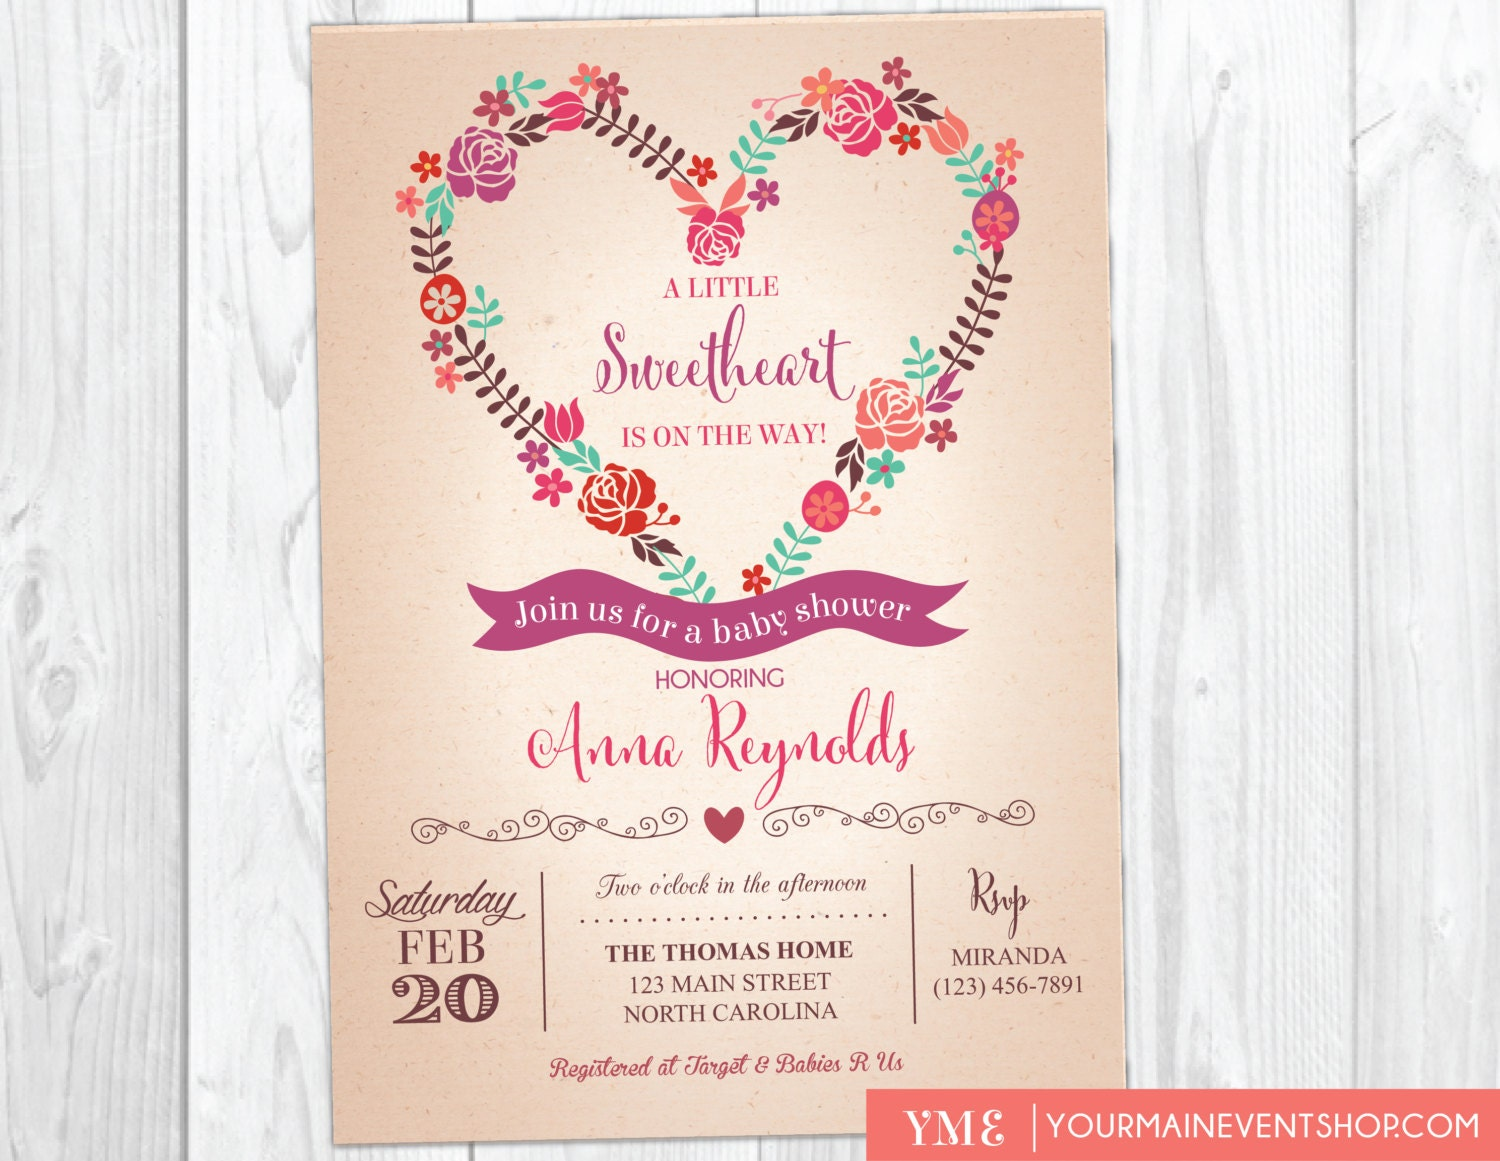 Sweetheart Valentine Baby Shower Invitation | Sweet Heart Girl Baby ...